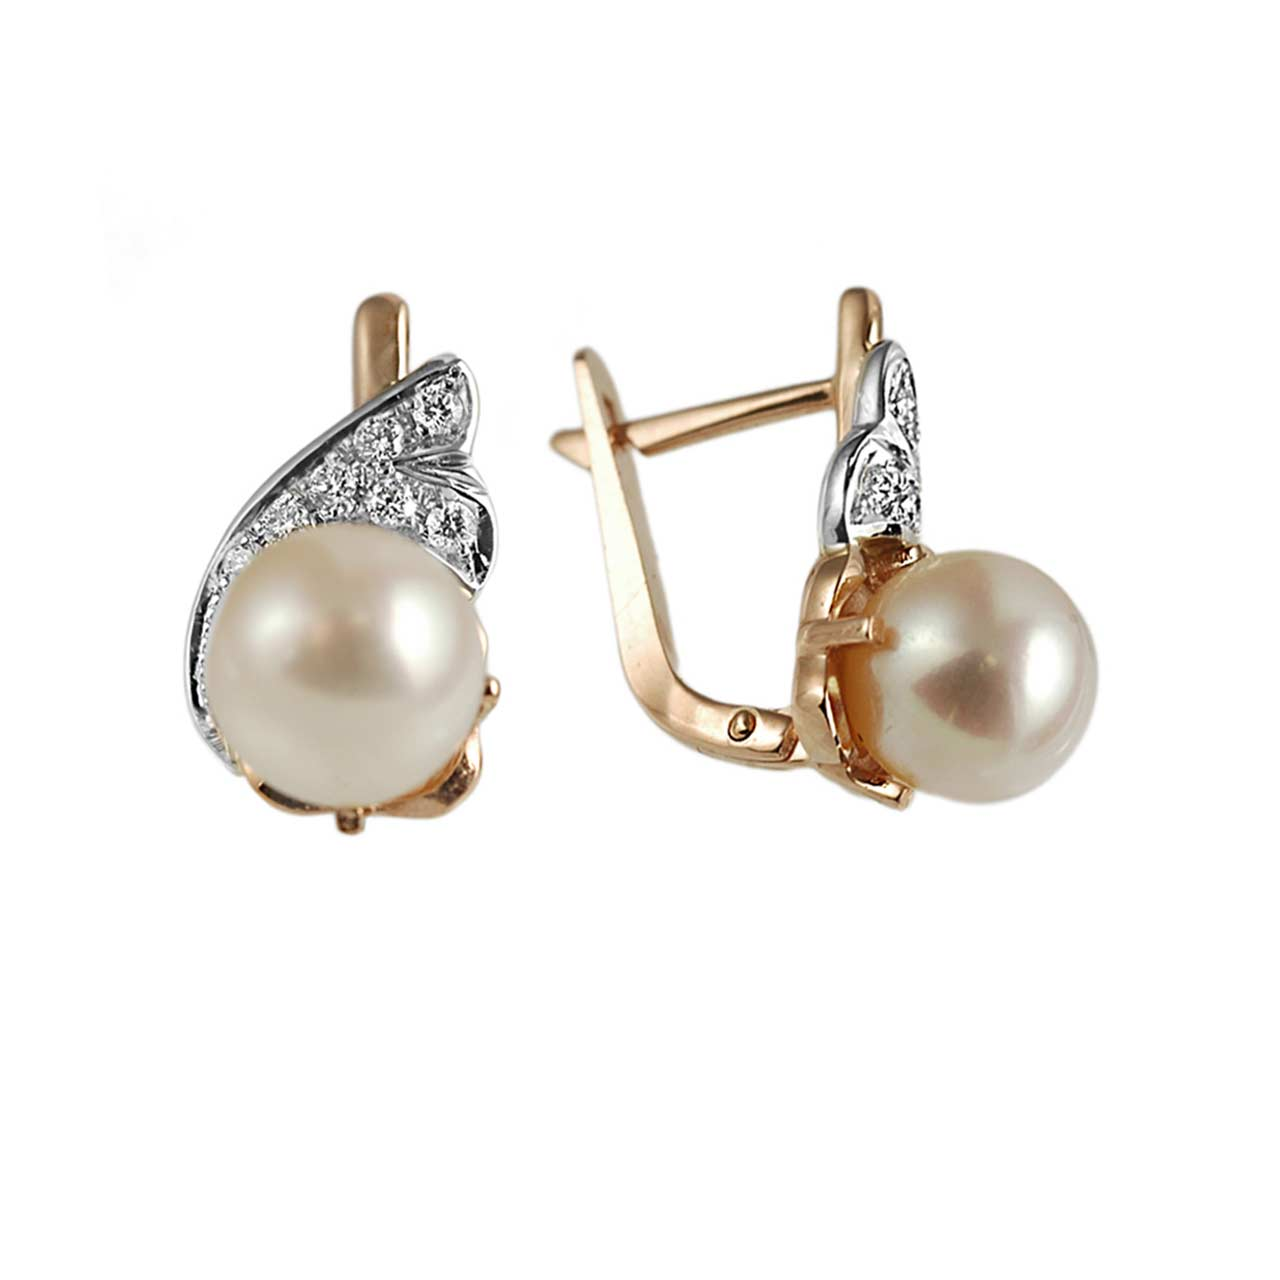 Antique pearl earrings 1